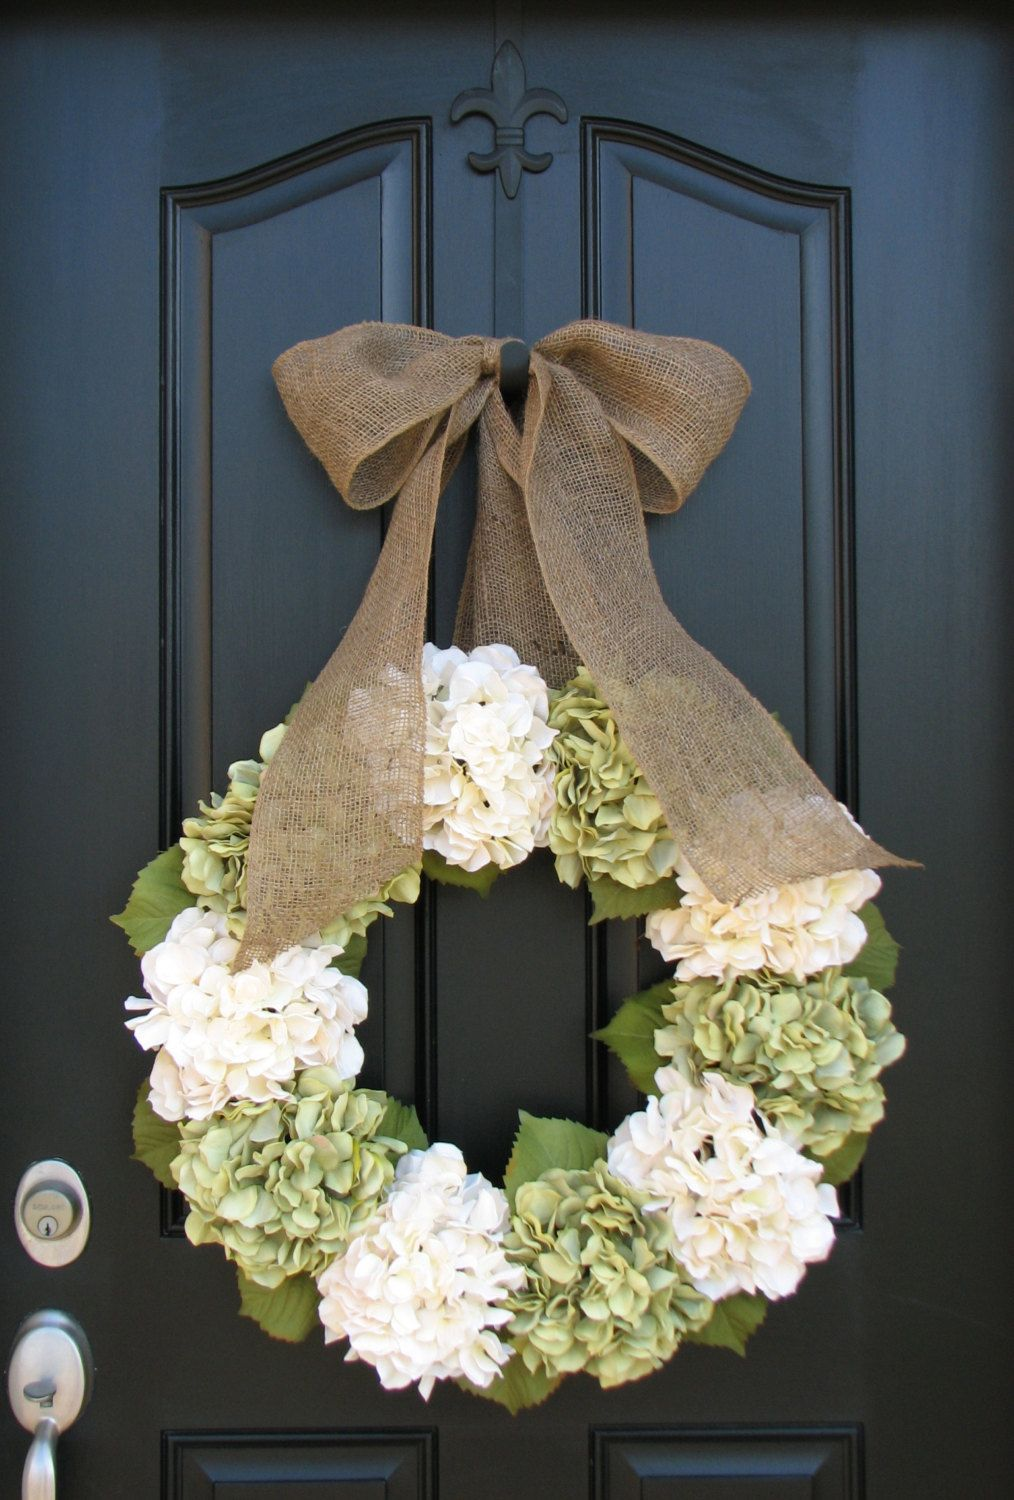 Summer Wreath XL Hydrangea Wreath Summer by twoinspireyou on Etsy, $115.00